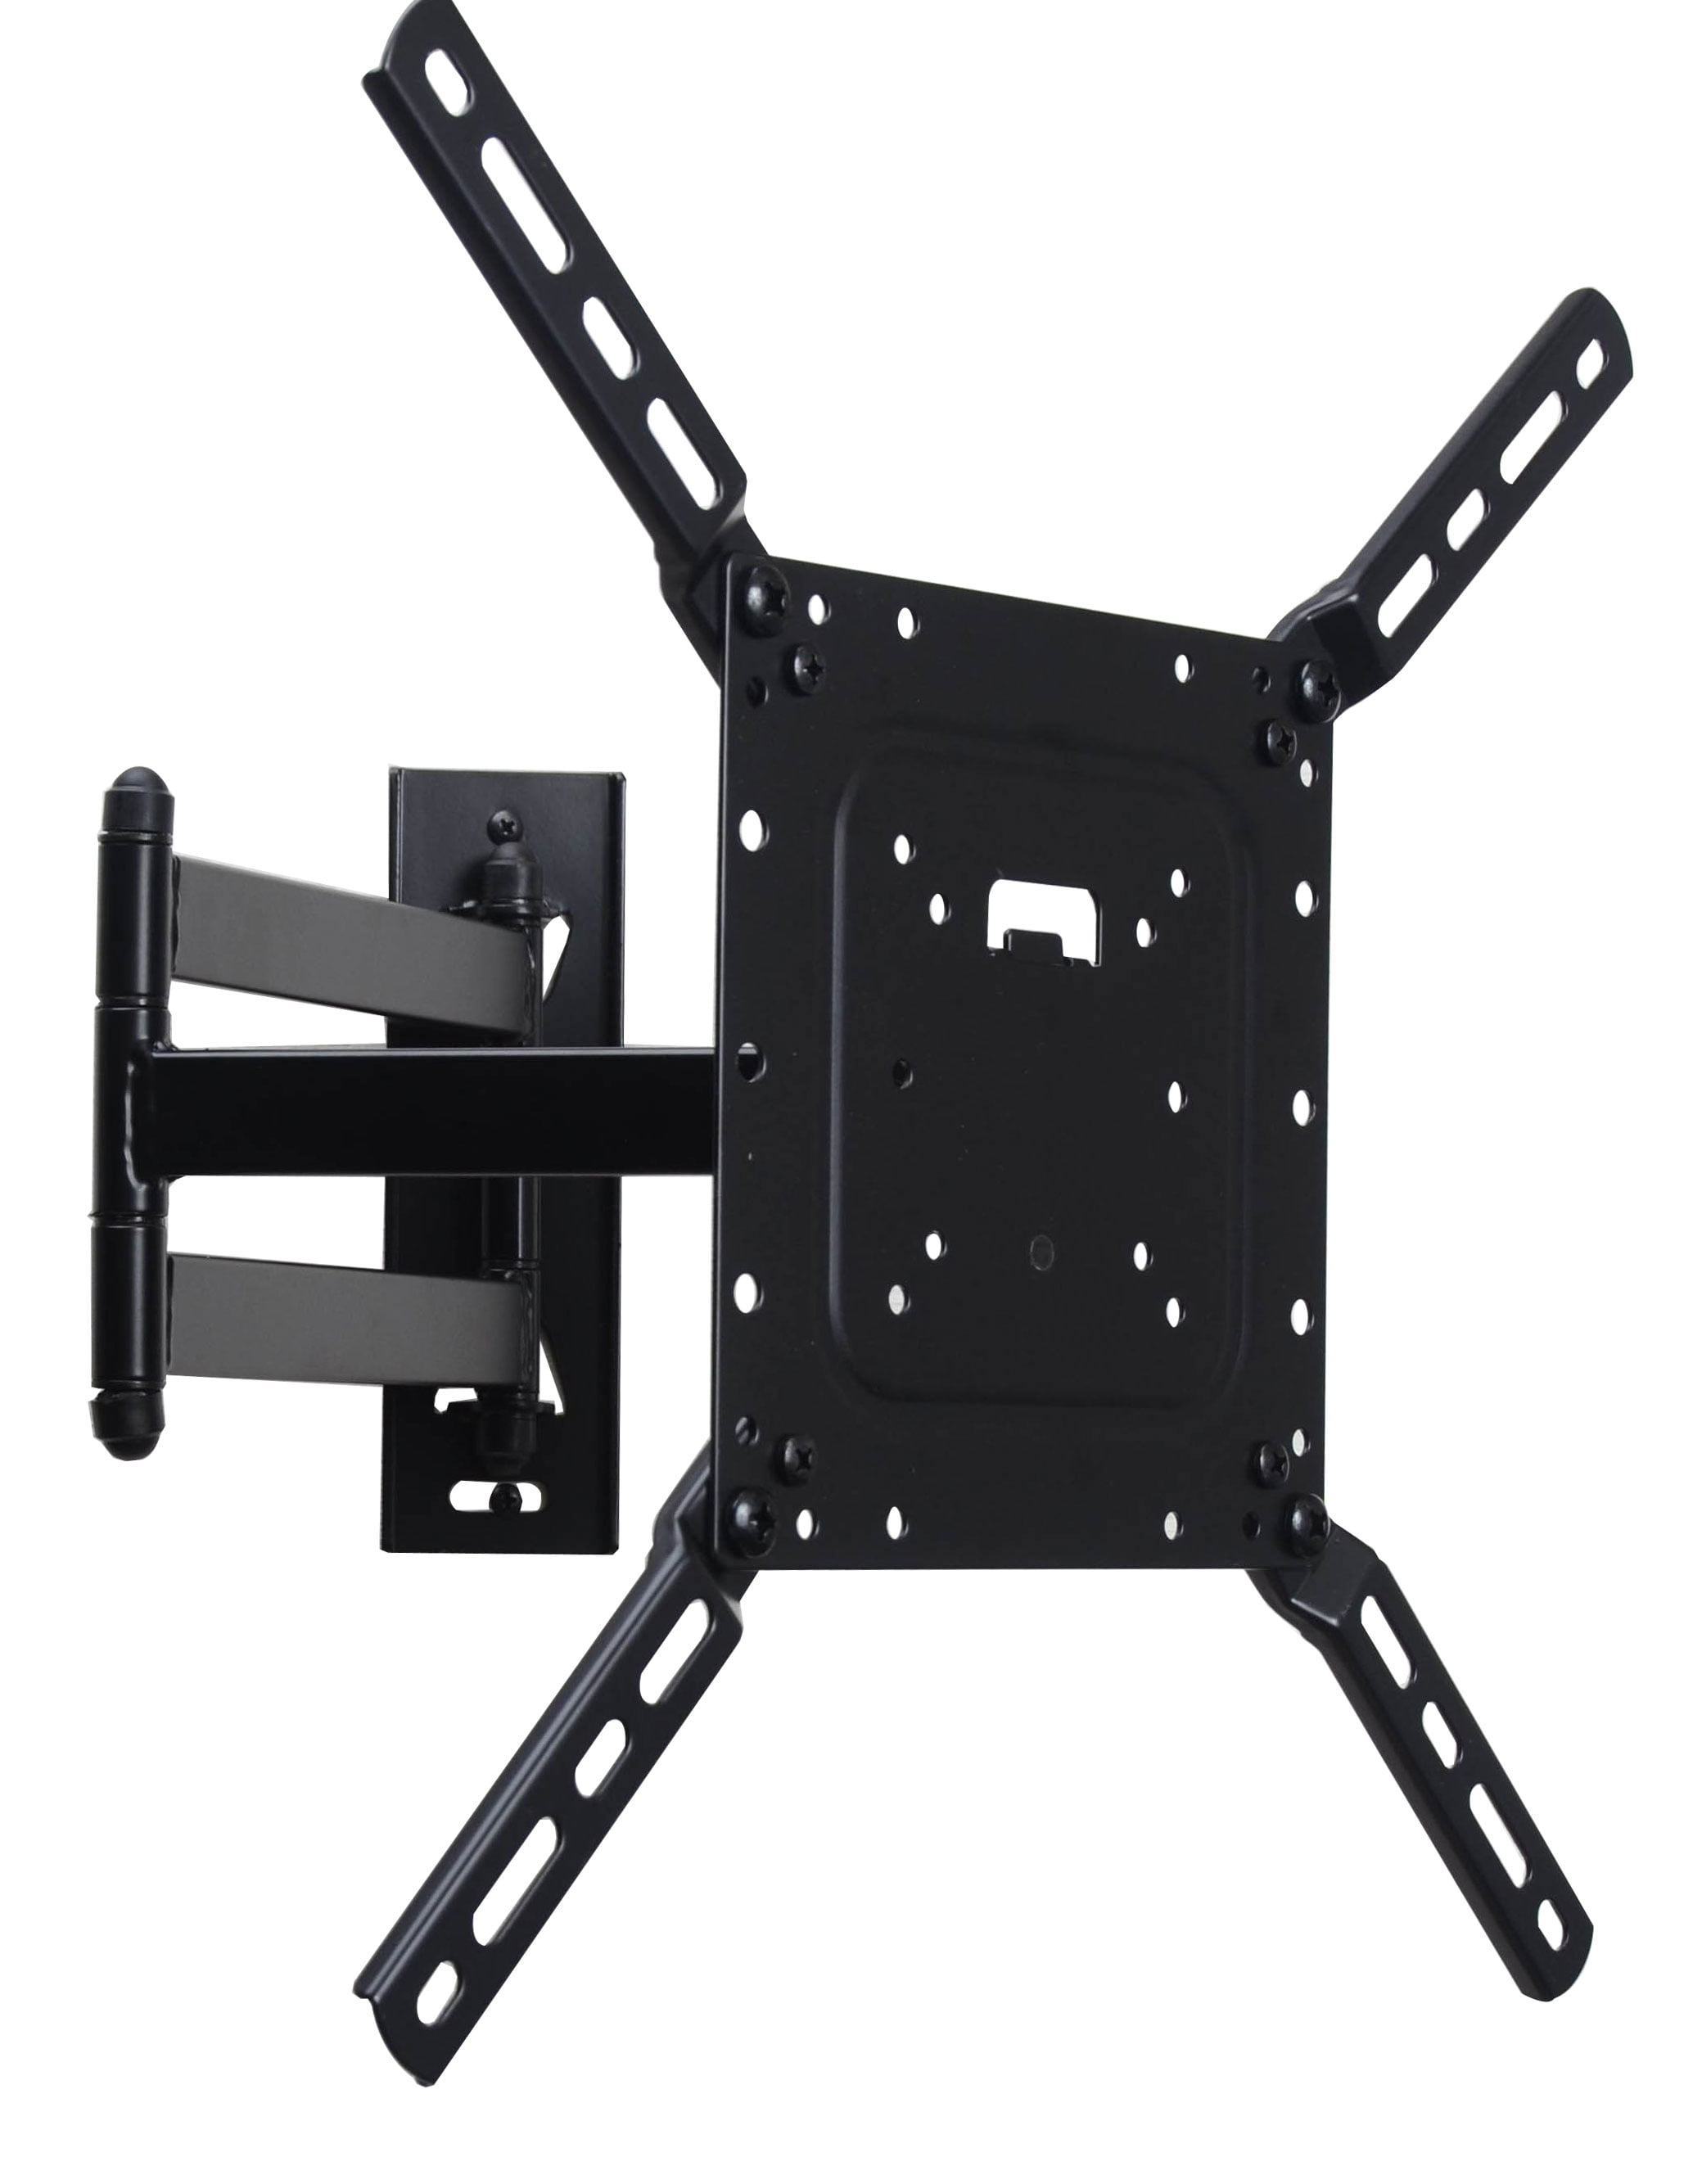 Videosecu Full Motion Tv Wall Mount For Vizio 24 28 32 37 39 40 42 43 47 48 49 50 55 Lcd Led Plasma Tilt Swivel Hdtv Cb6